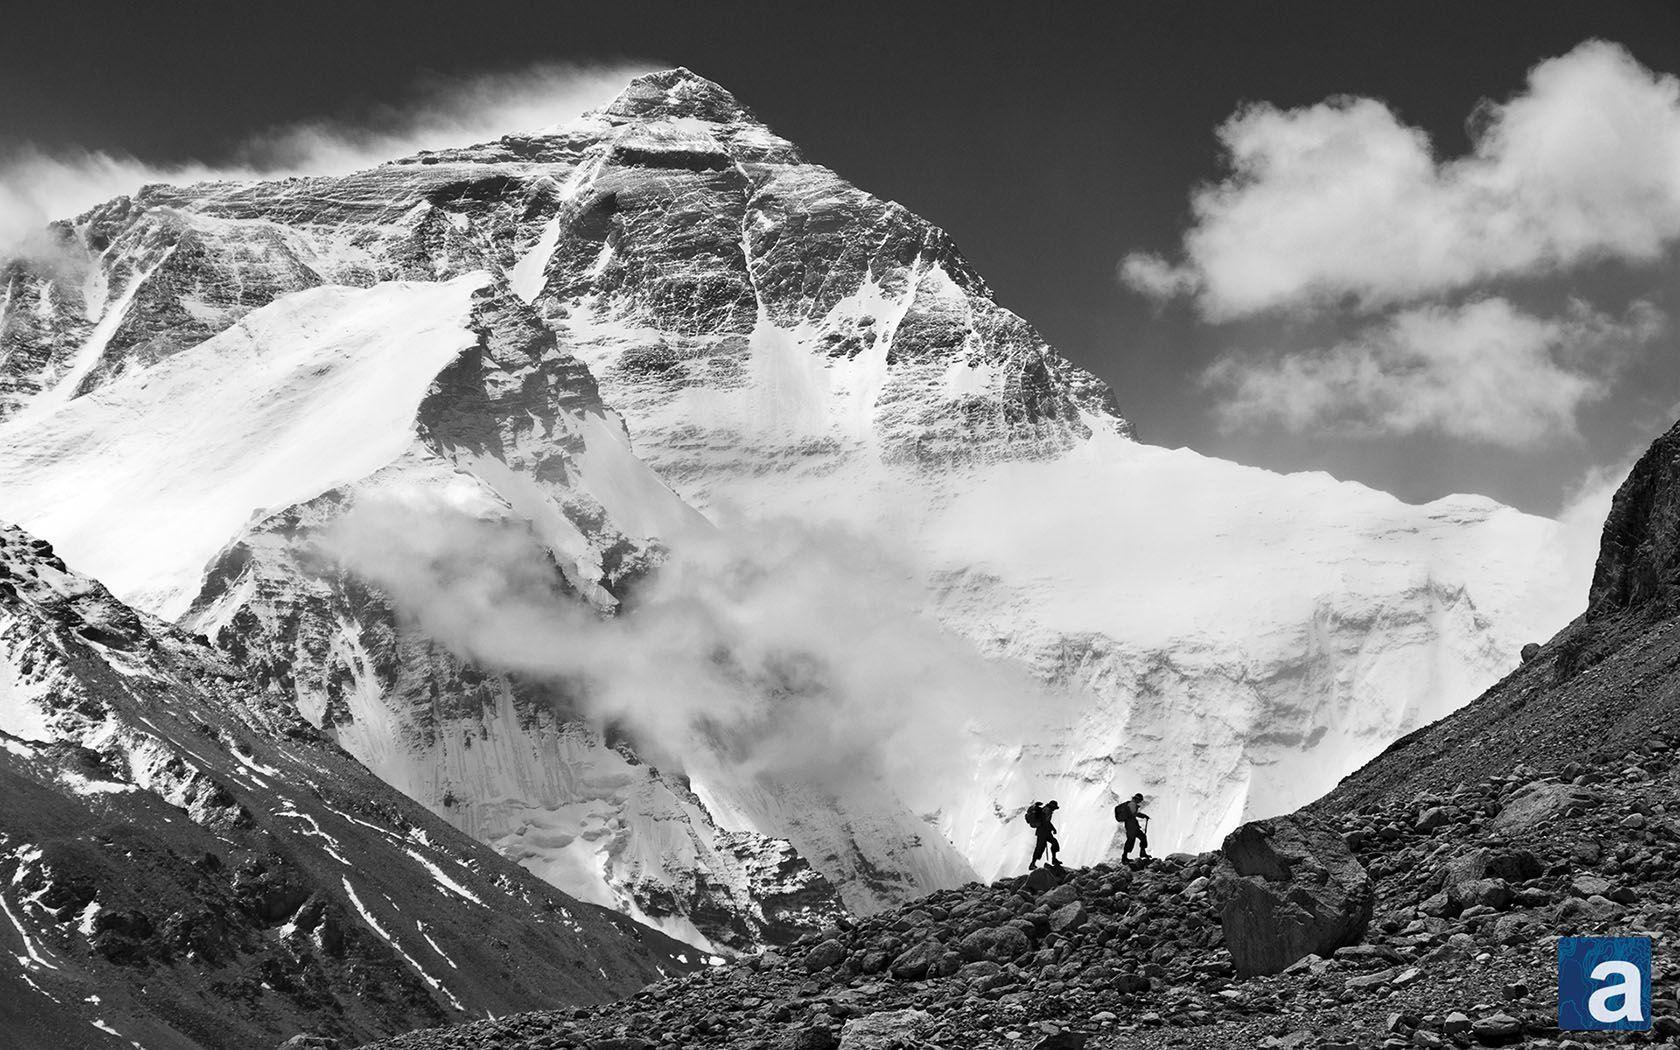 Wallpaper Wednesday: Mt. Everest | adventure journal